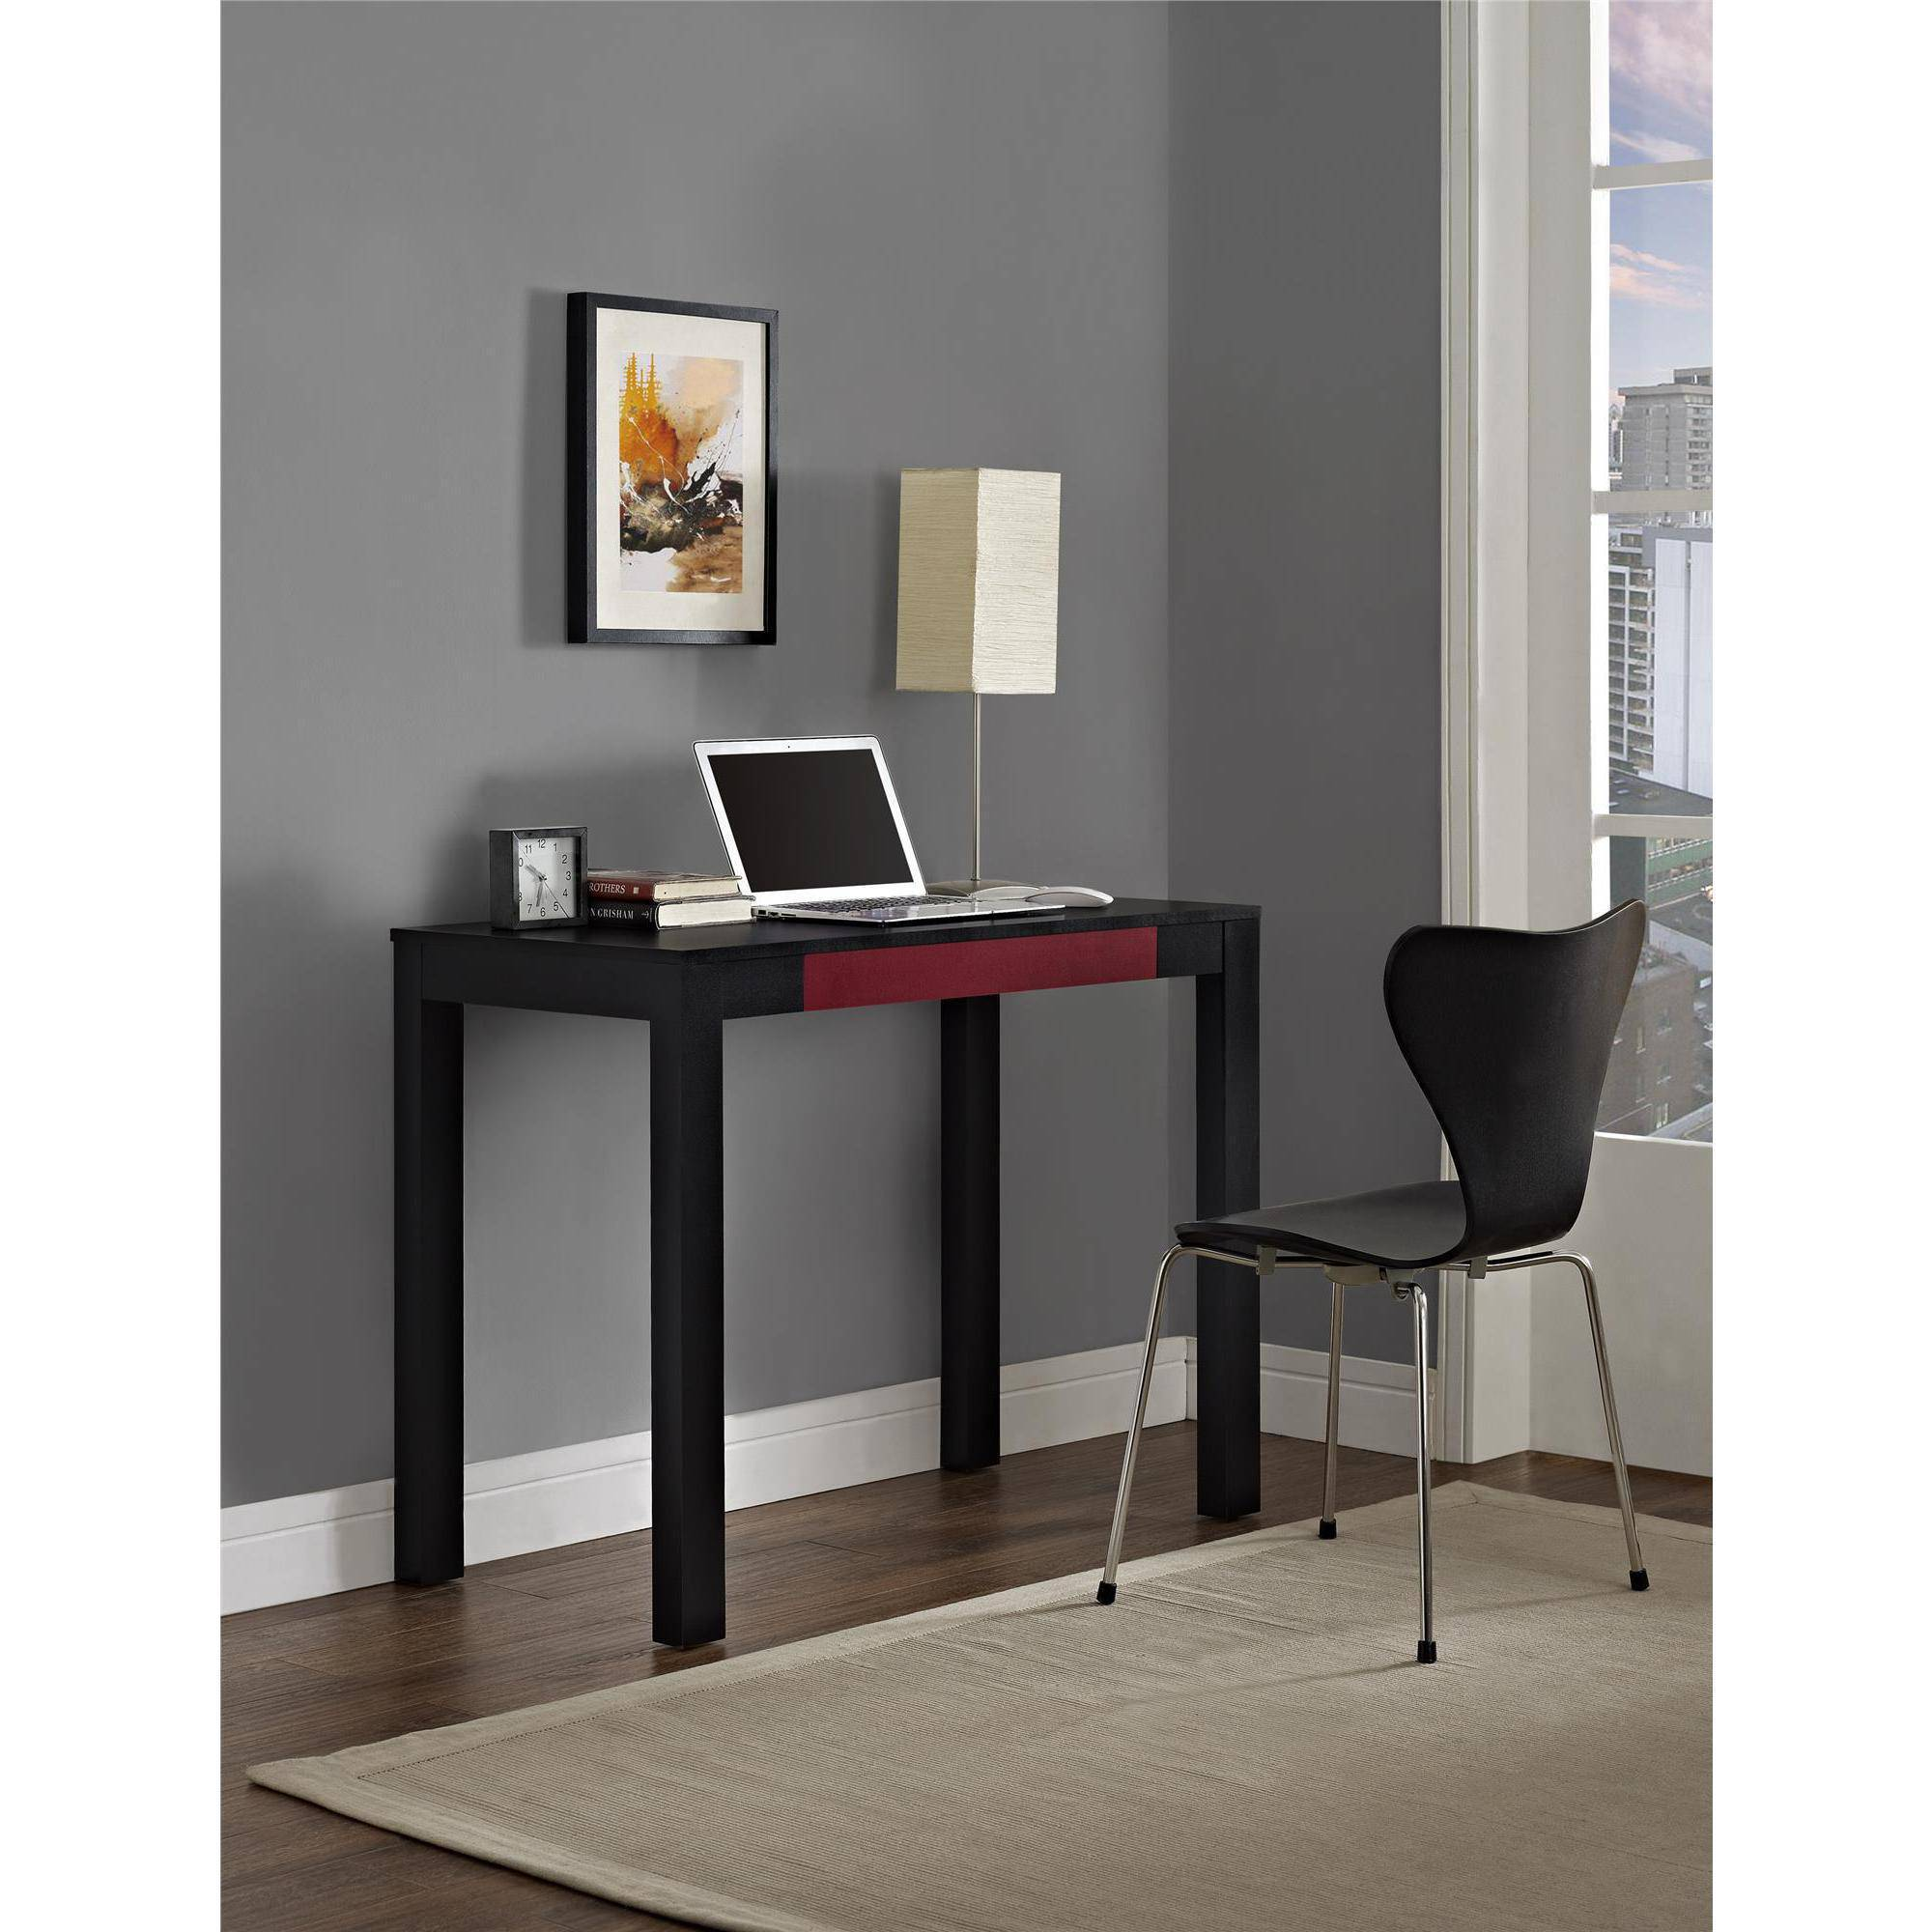 Parsons Desk With Colored Drawer, Multiple Colors   Walmart.com